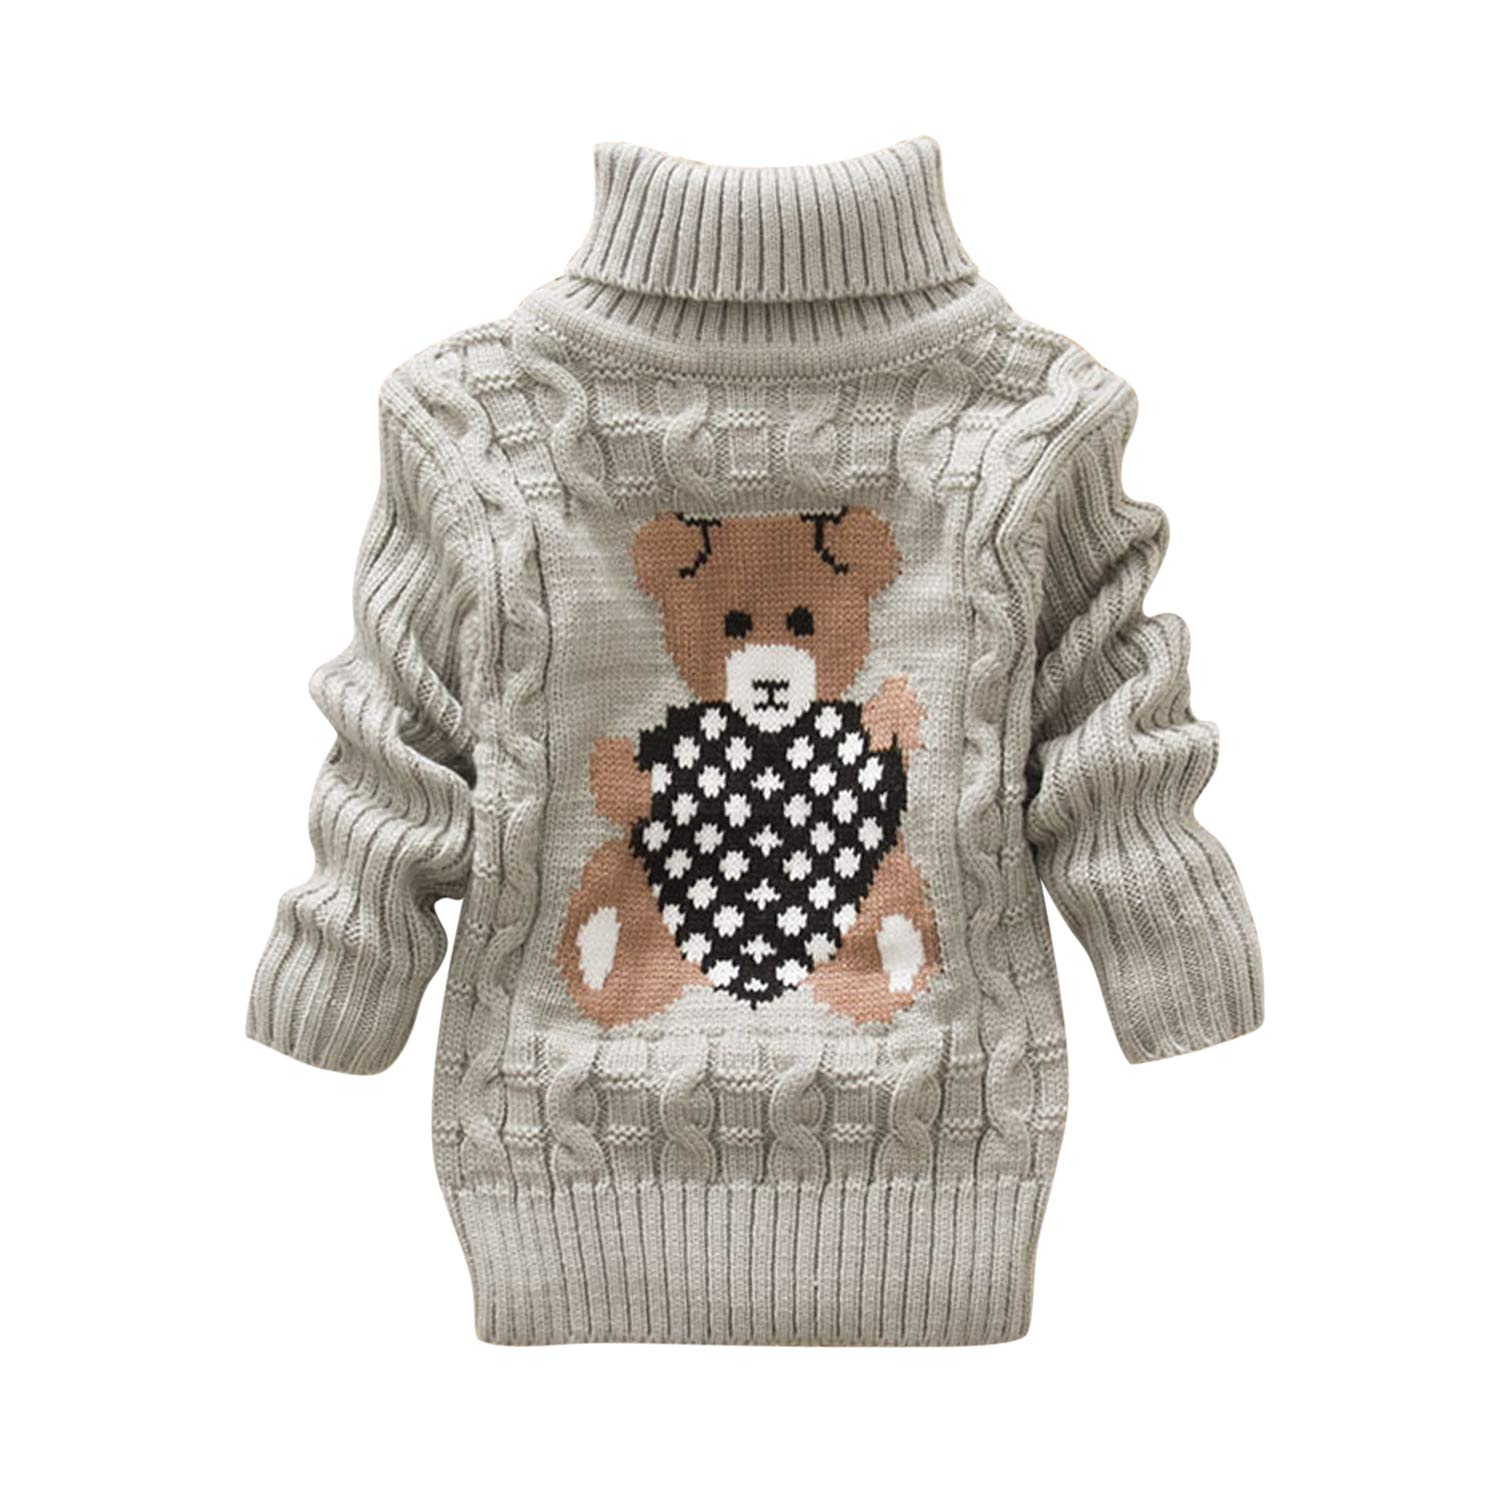 Evelin LEE Kids Bear Twist Long Sleeve Turtleneck Winter Warm Knit Christmas Sweater